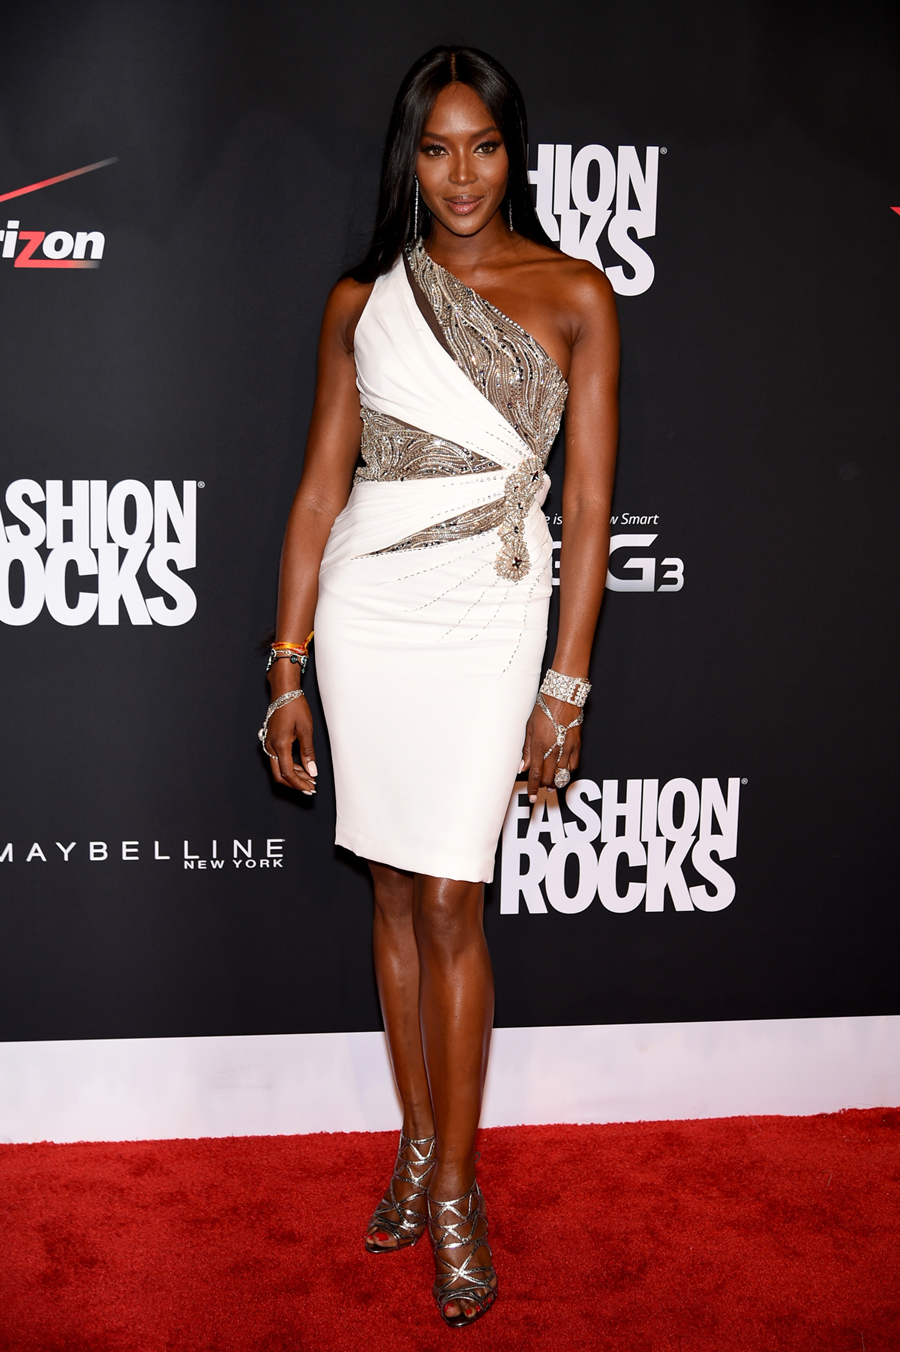 Naomi Campbell at Fashion Rocks